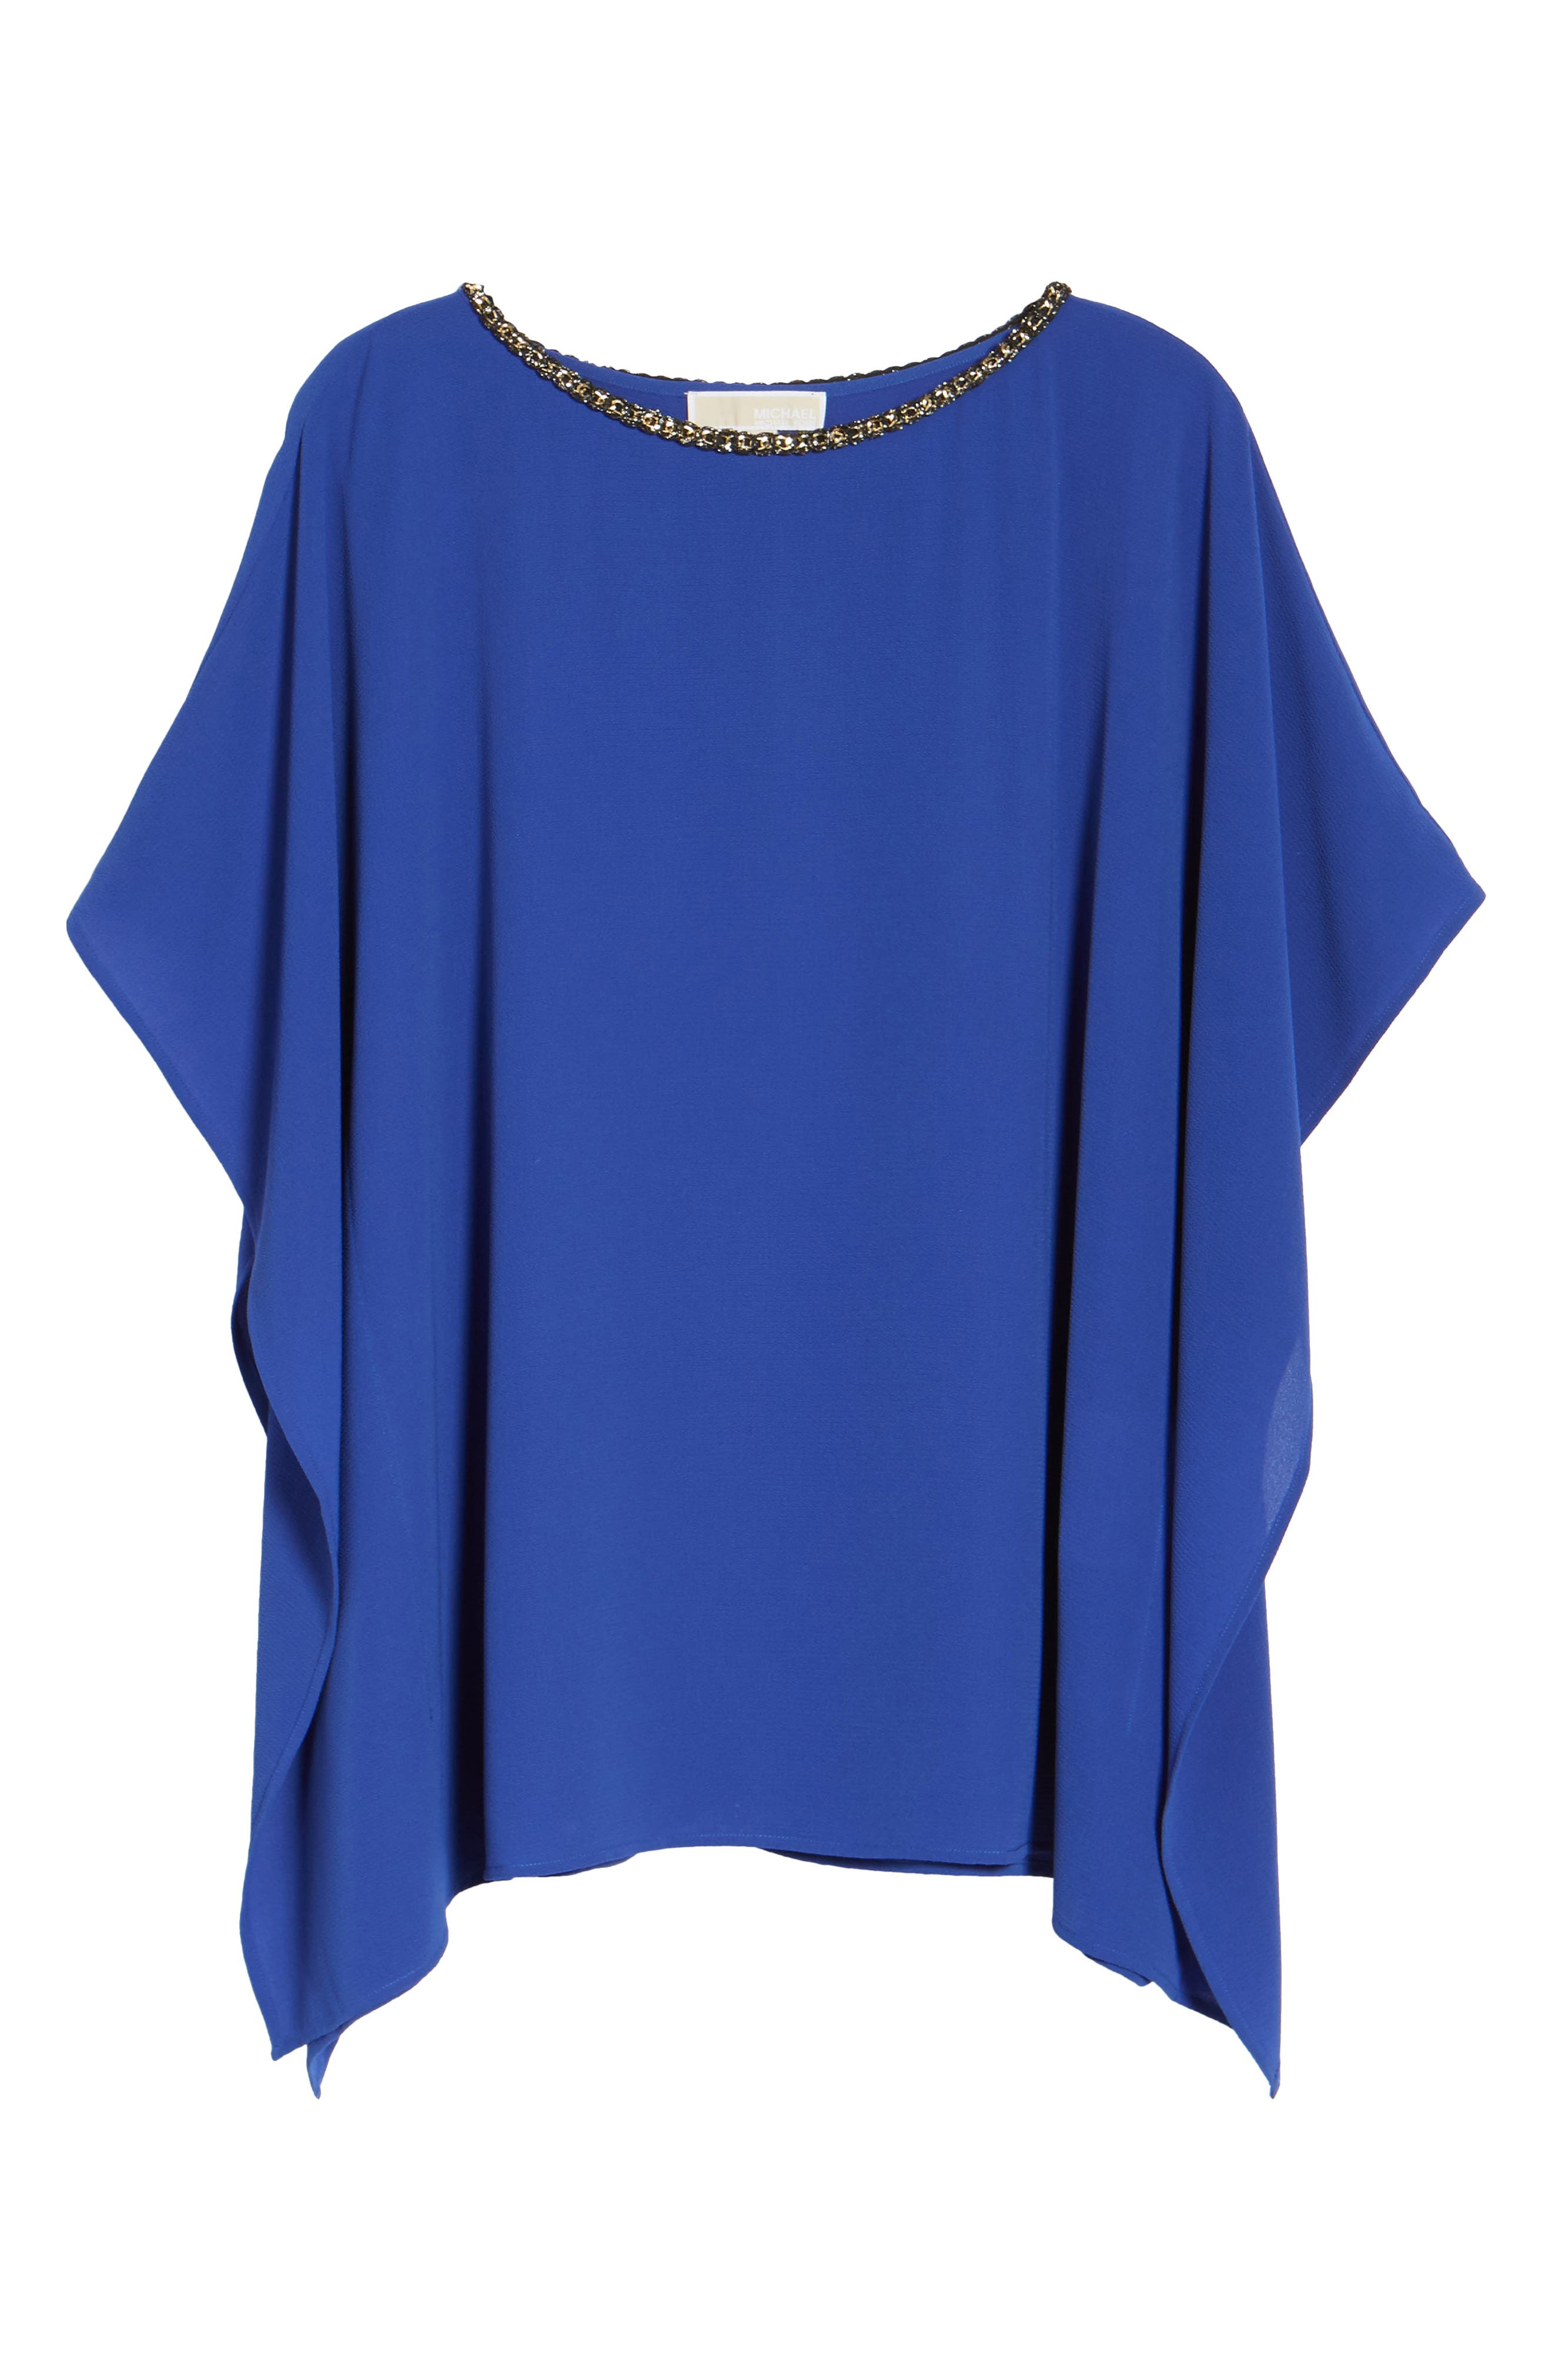 Chain Neck Top,                             Alternate thumbnail 6, color,                             Bright Royal